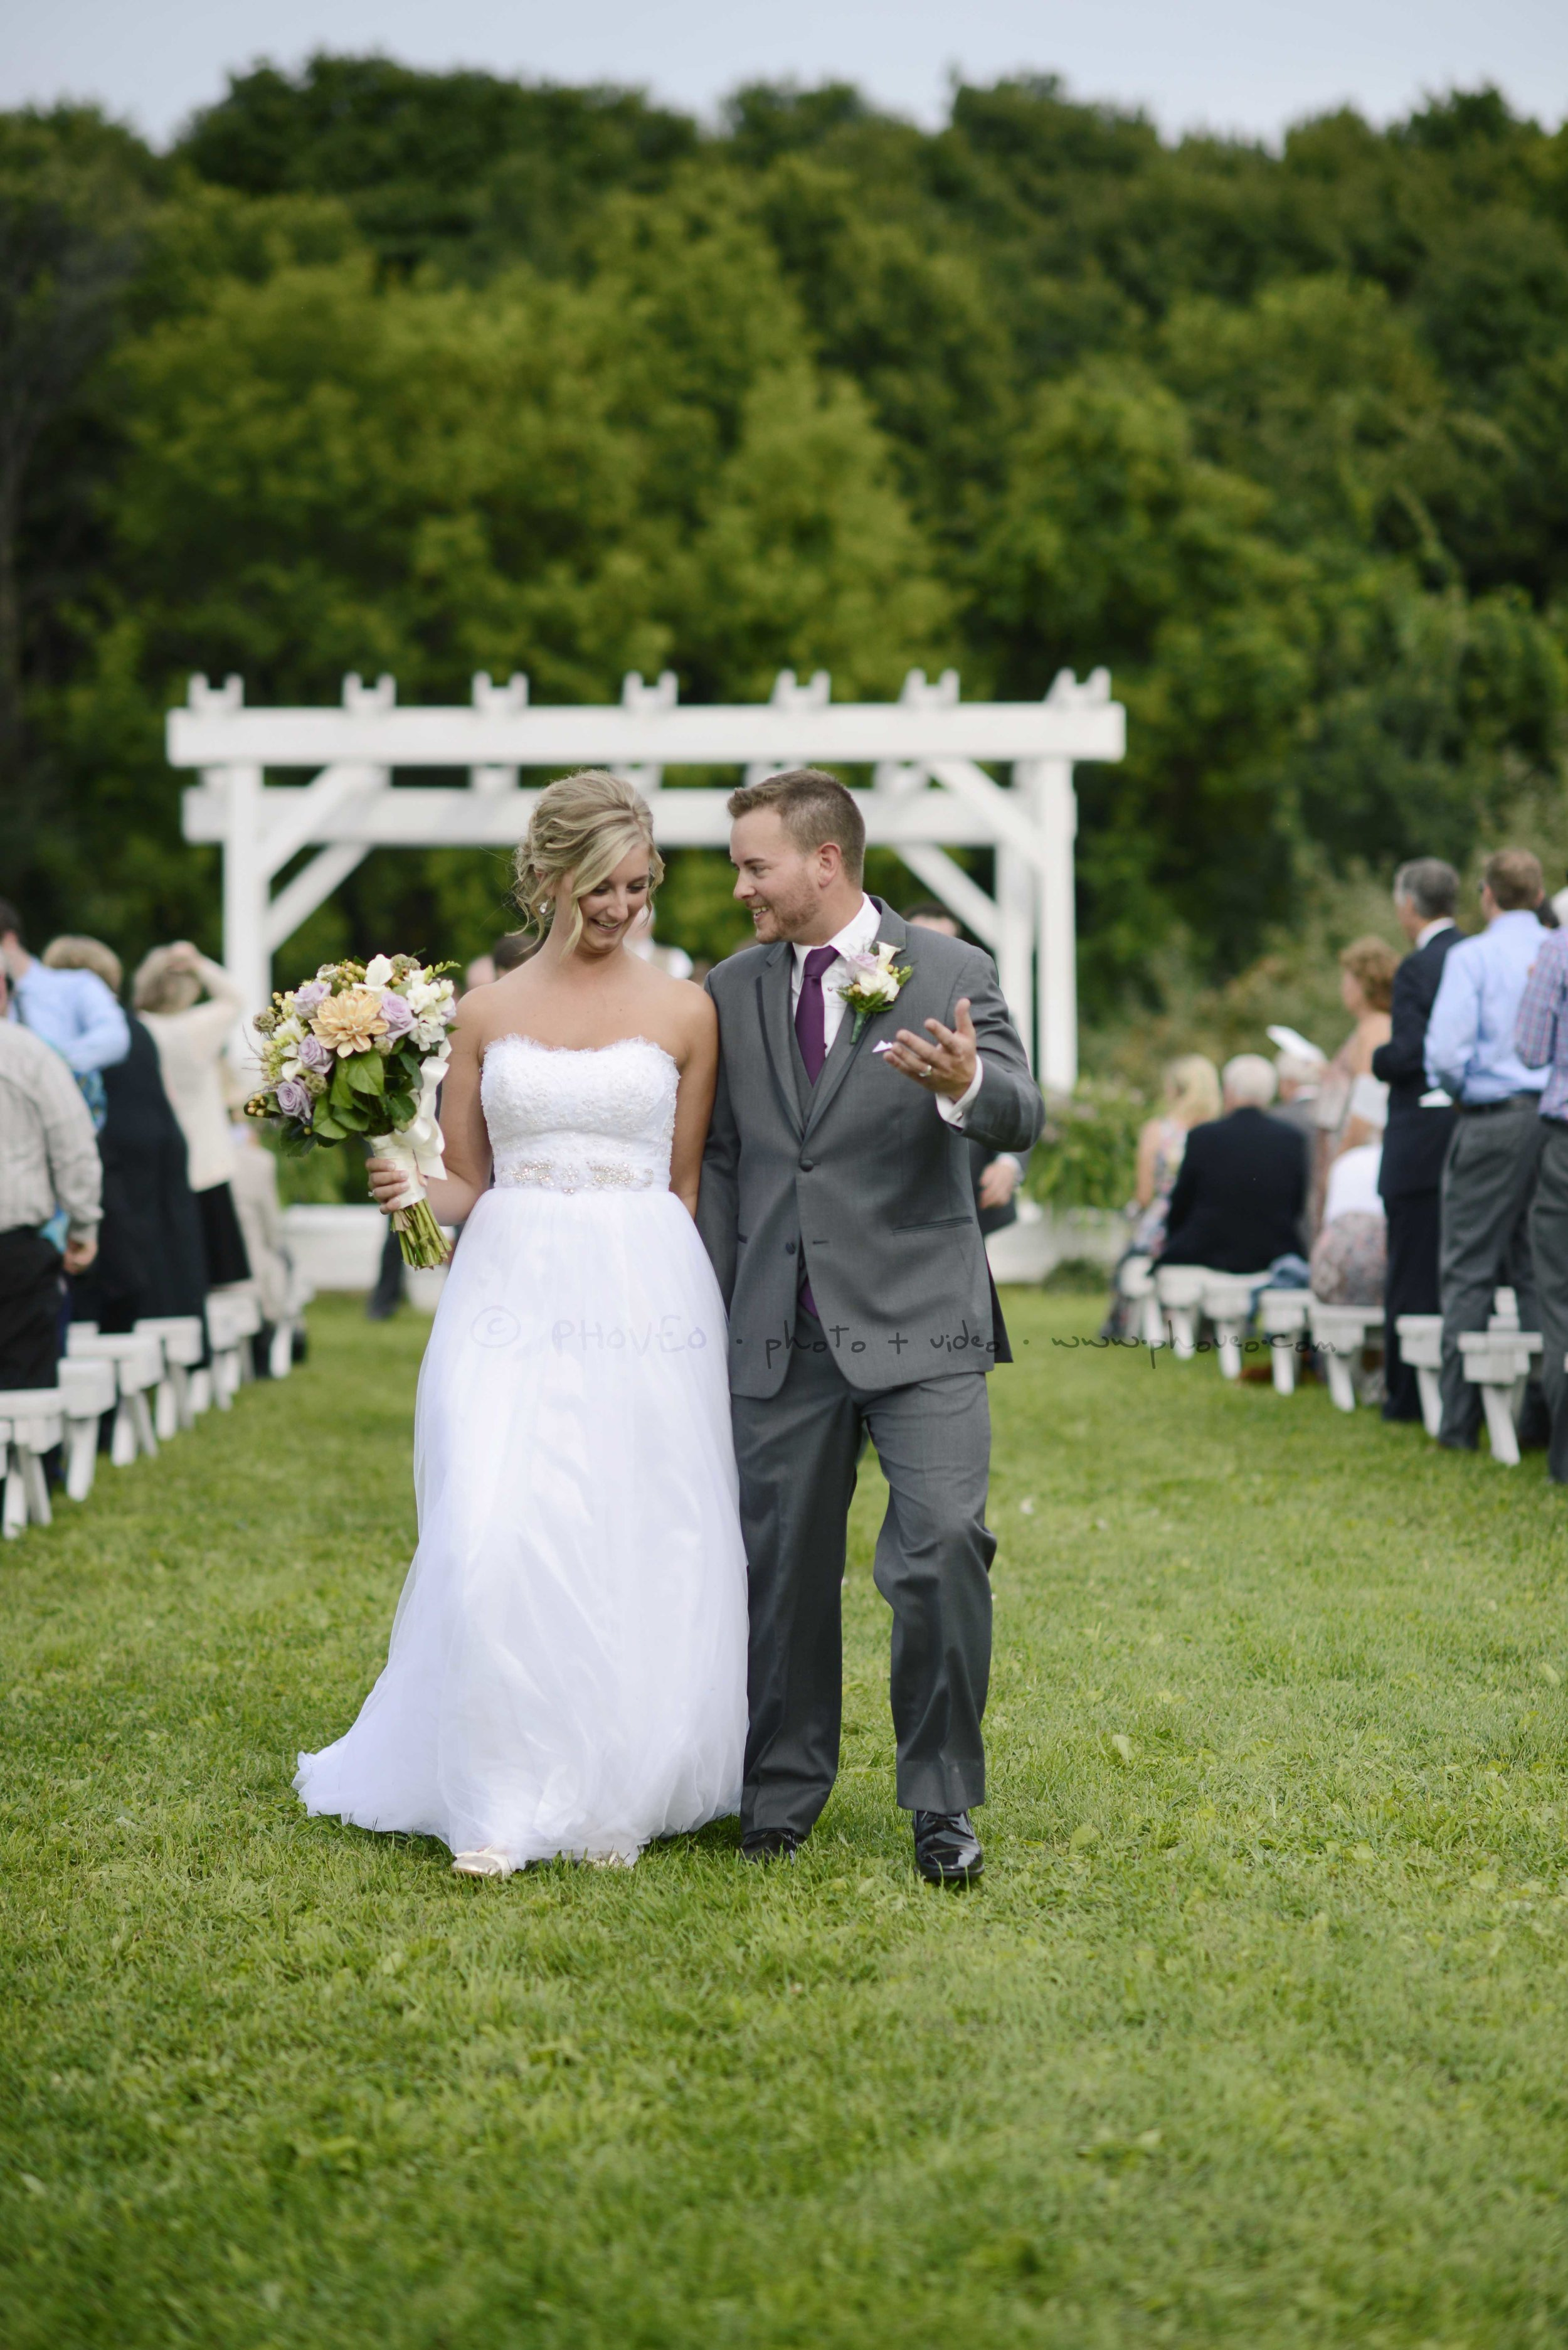 WM_20160826_Katelyn+Tony_52.jpg